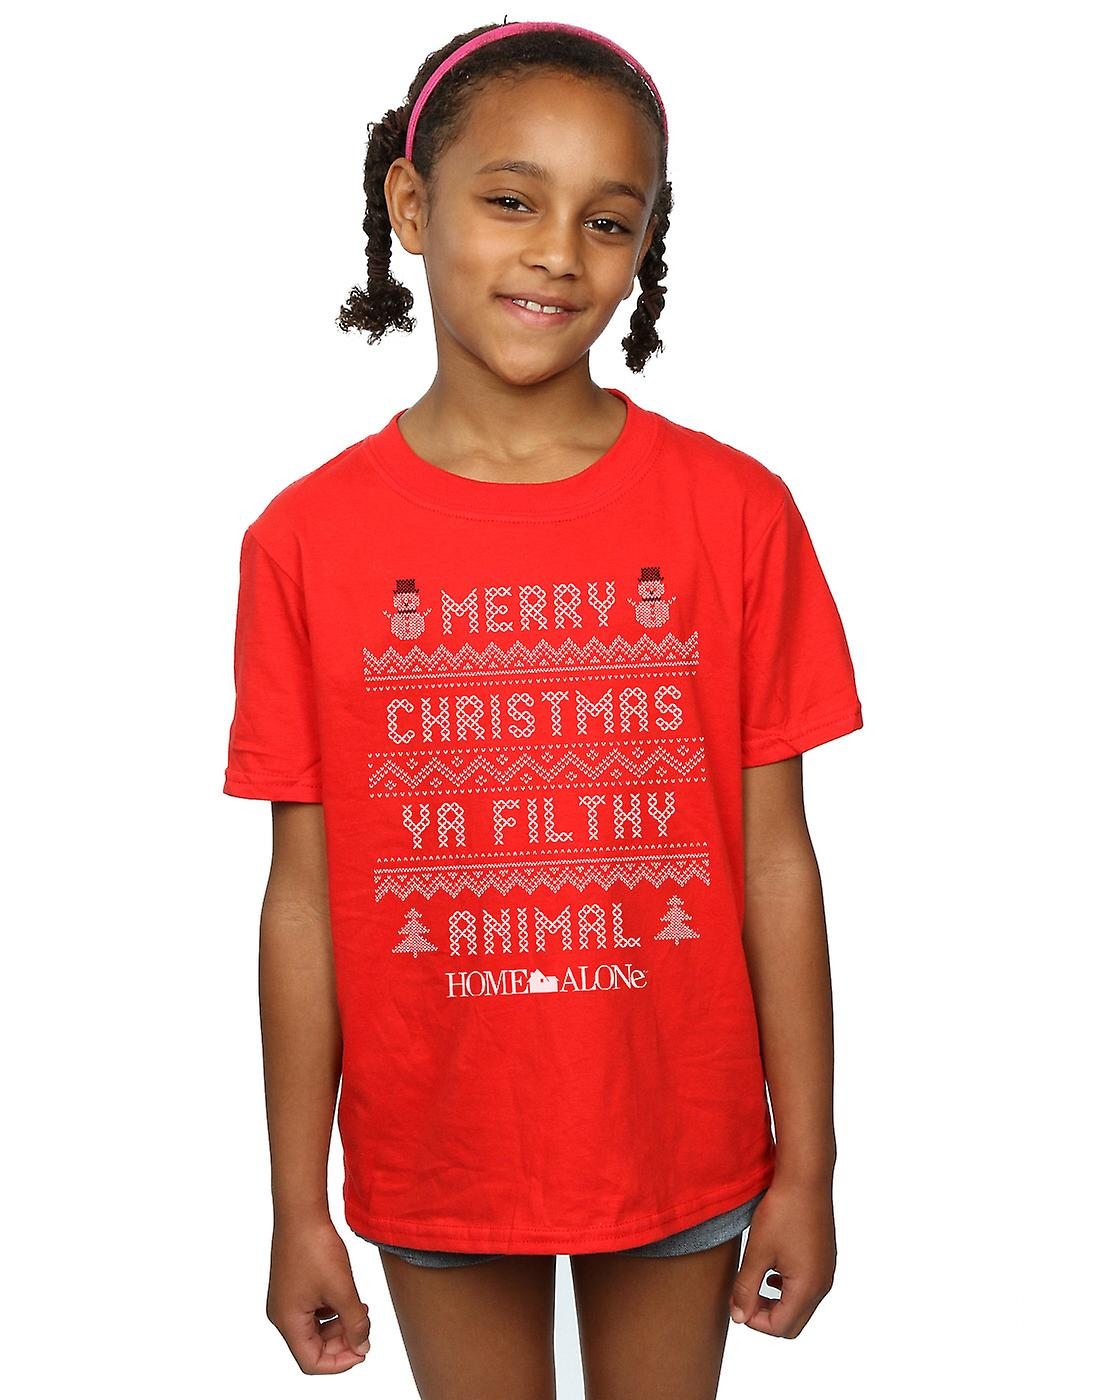 f6e68c88 Home Alone Girls Filthy Animal Knit Style T-Shirt | Fruugo